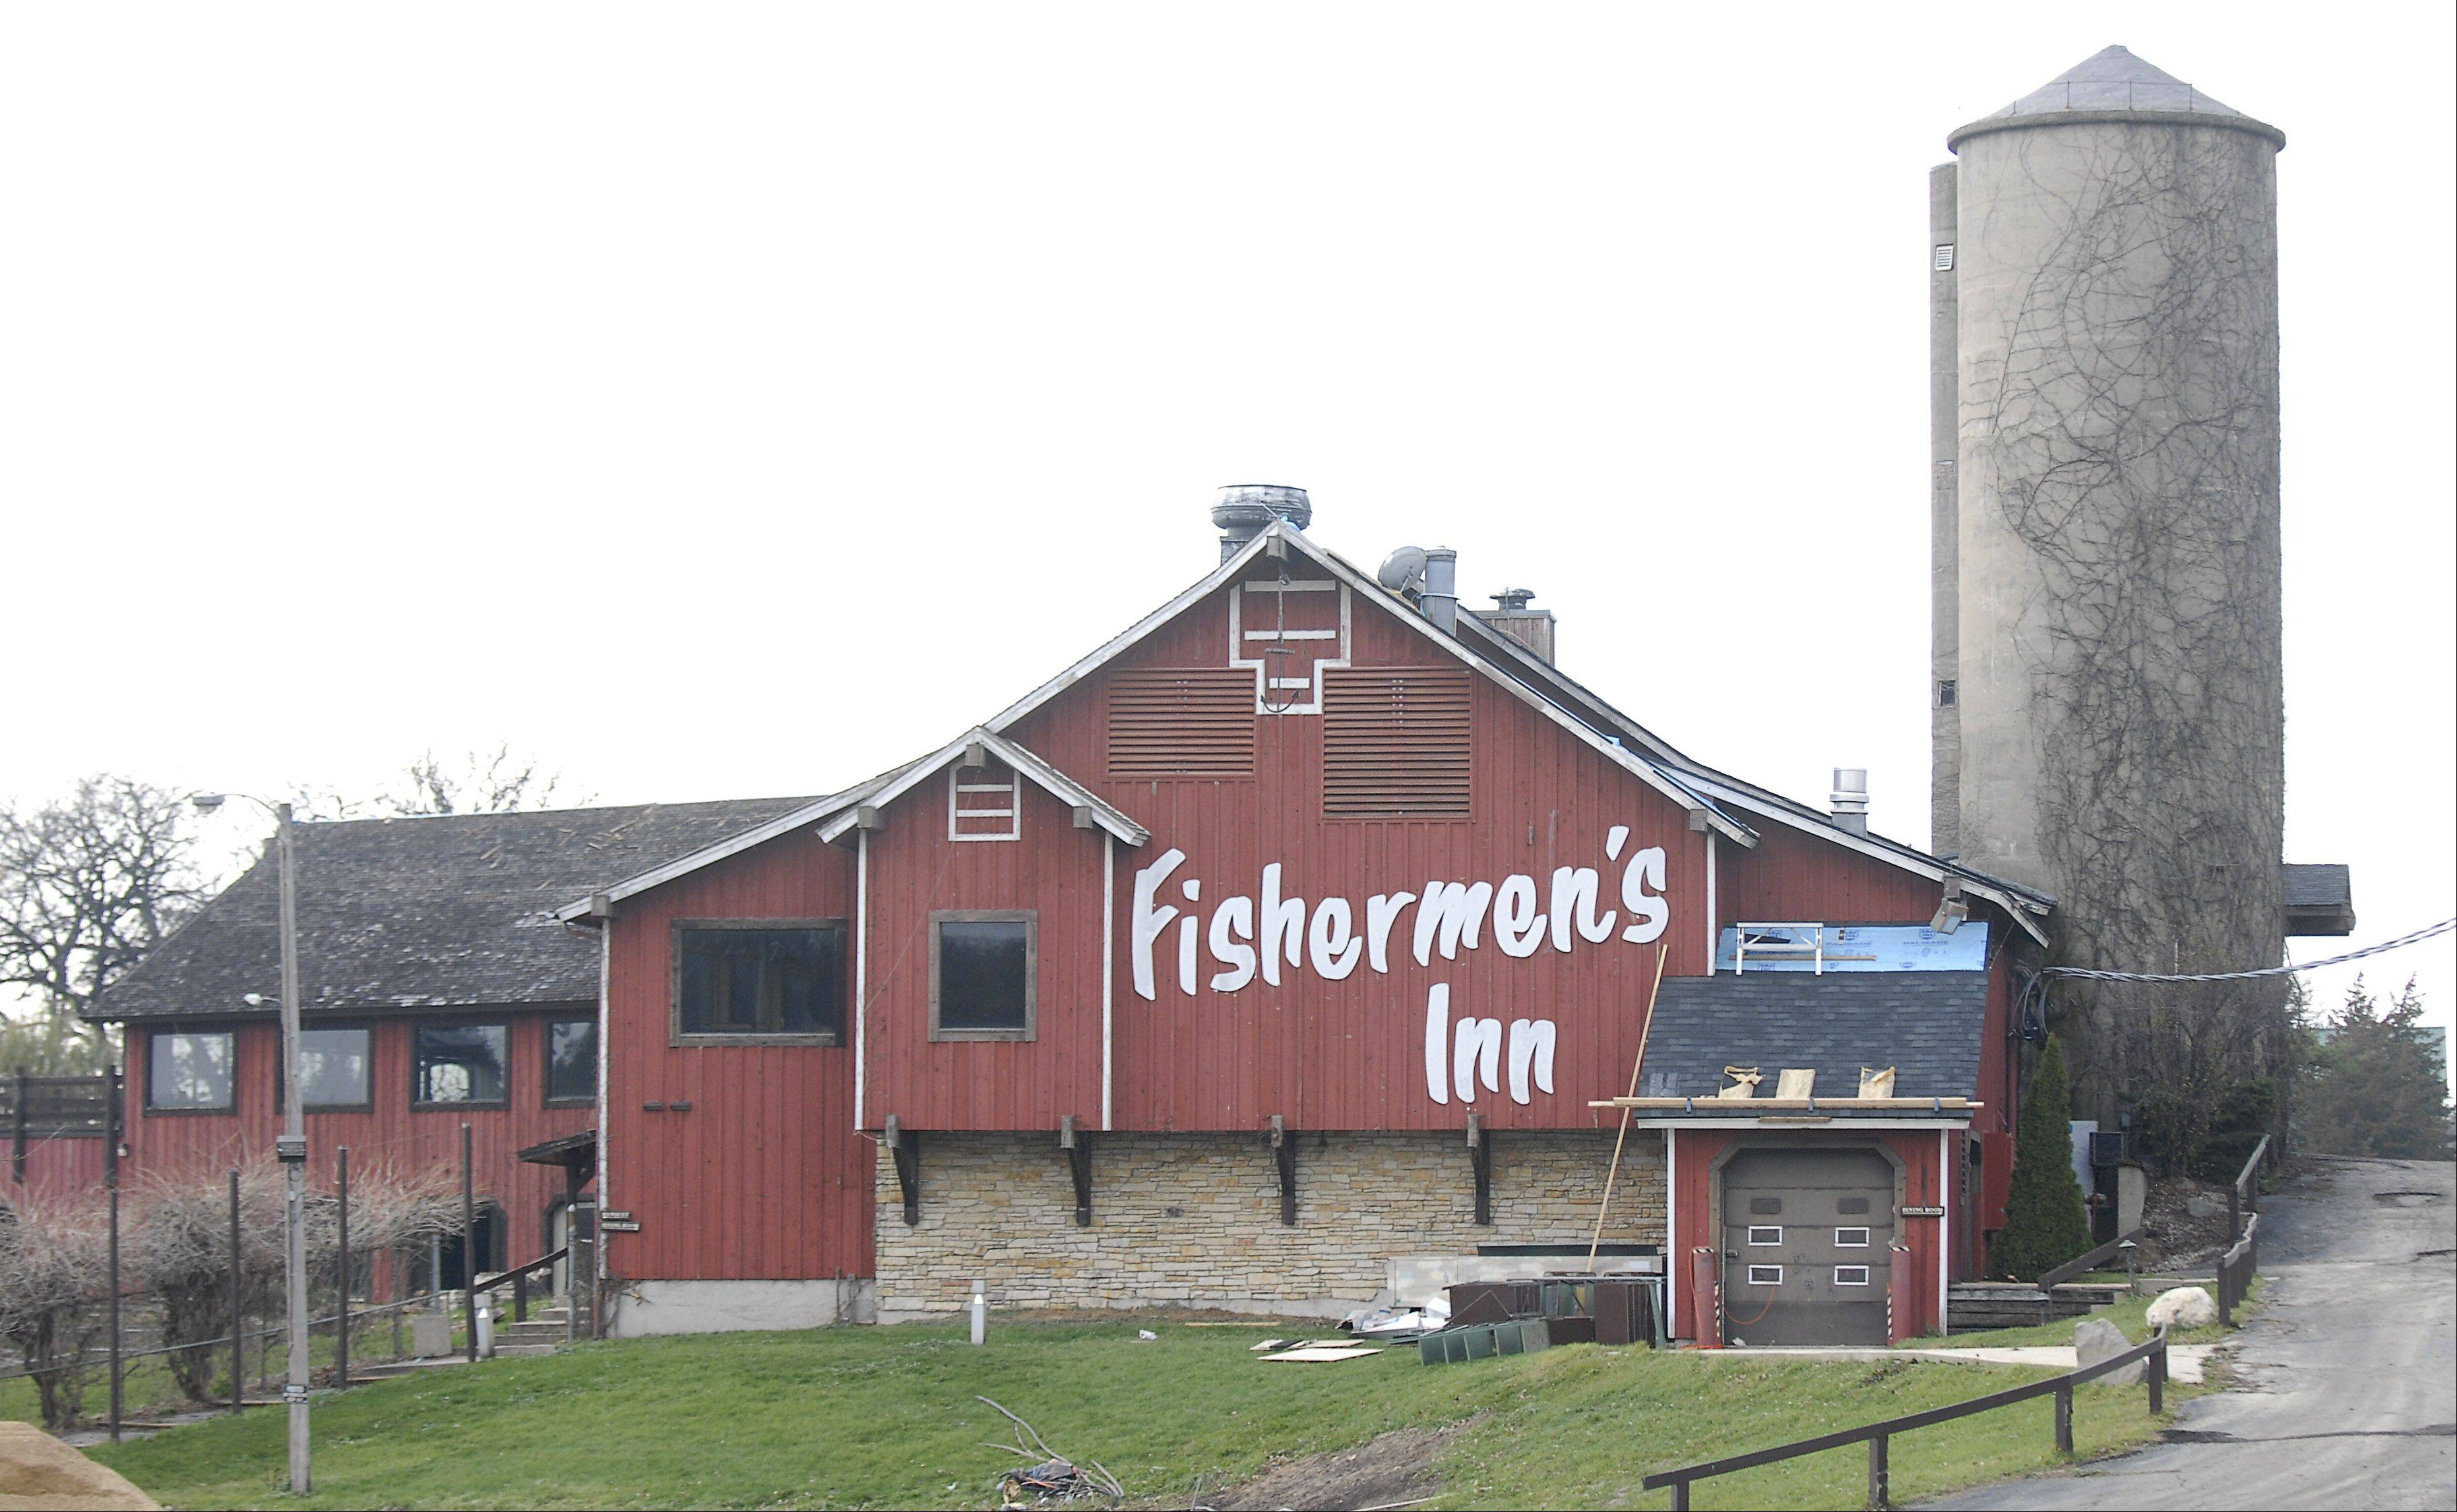 The Fishermen's Inn in Elburn has new owners, who plan to reopen the restaurant sometime next year.